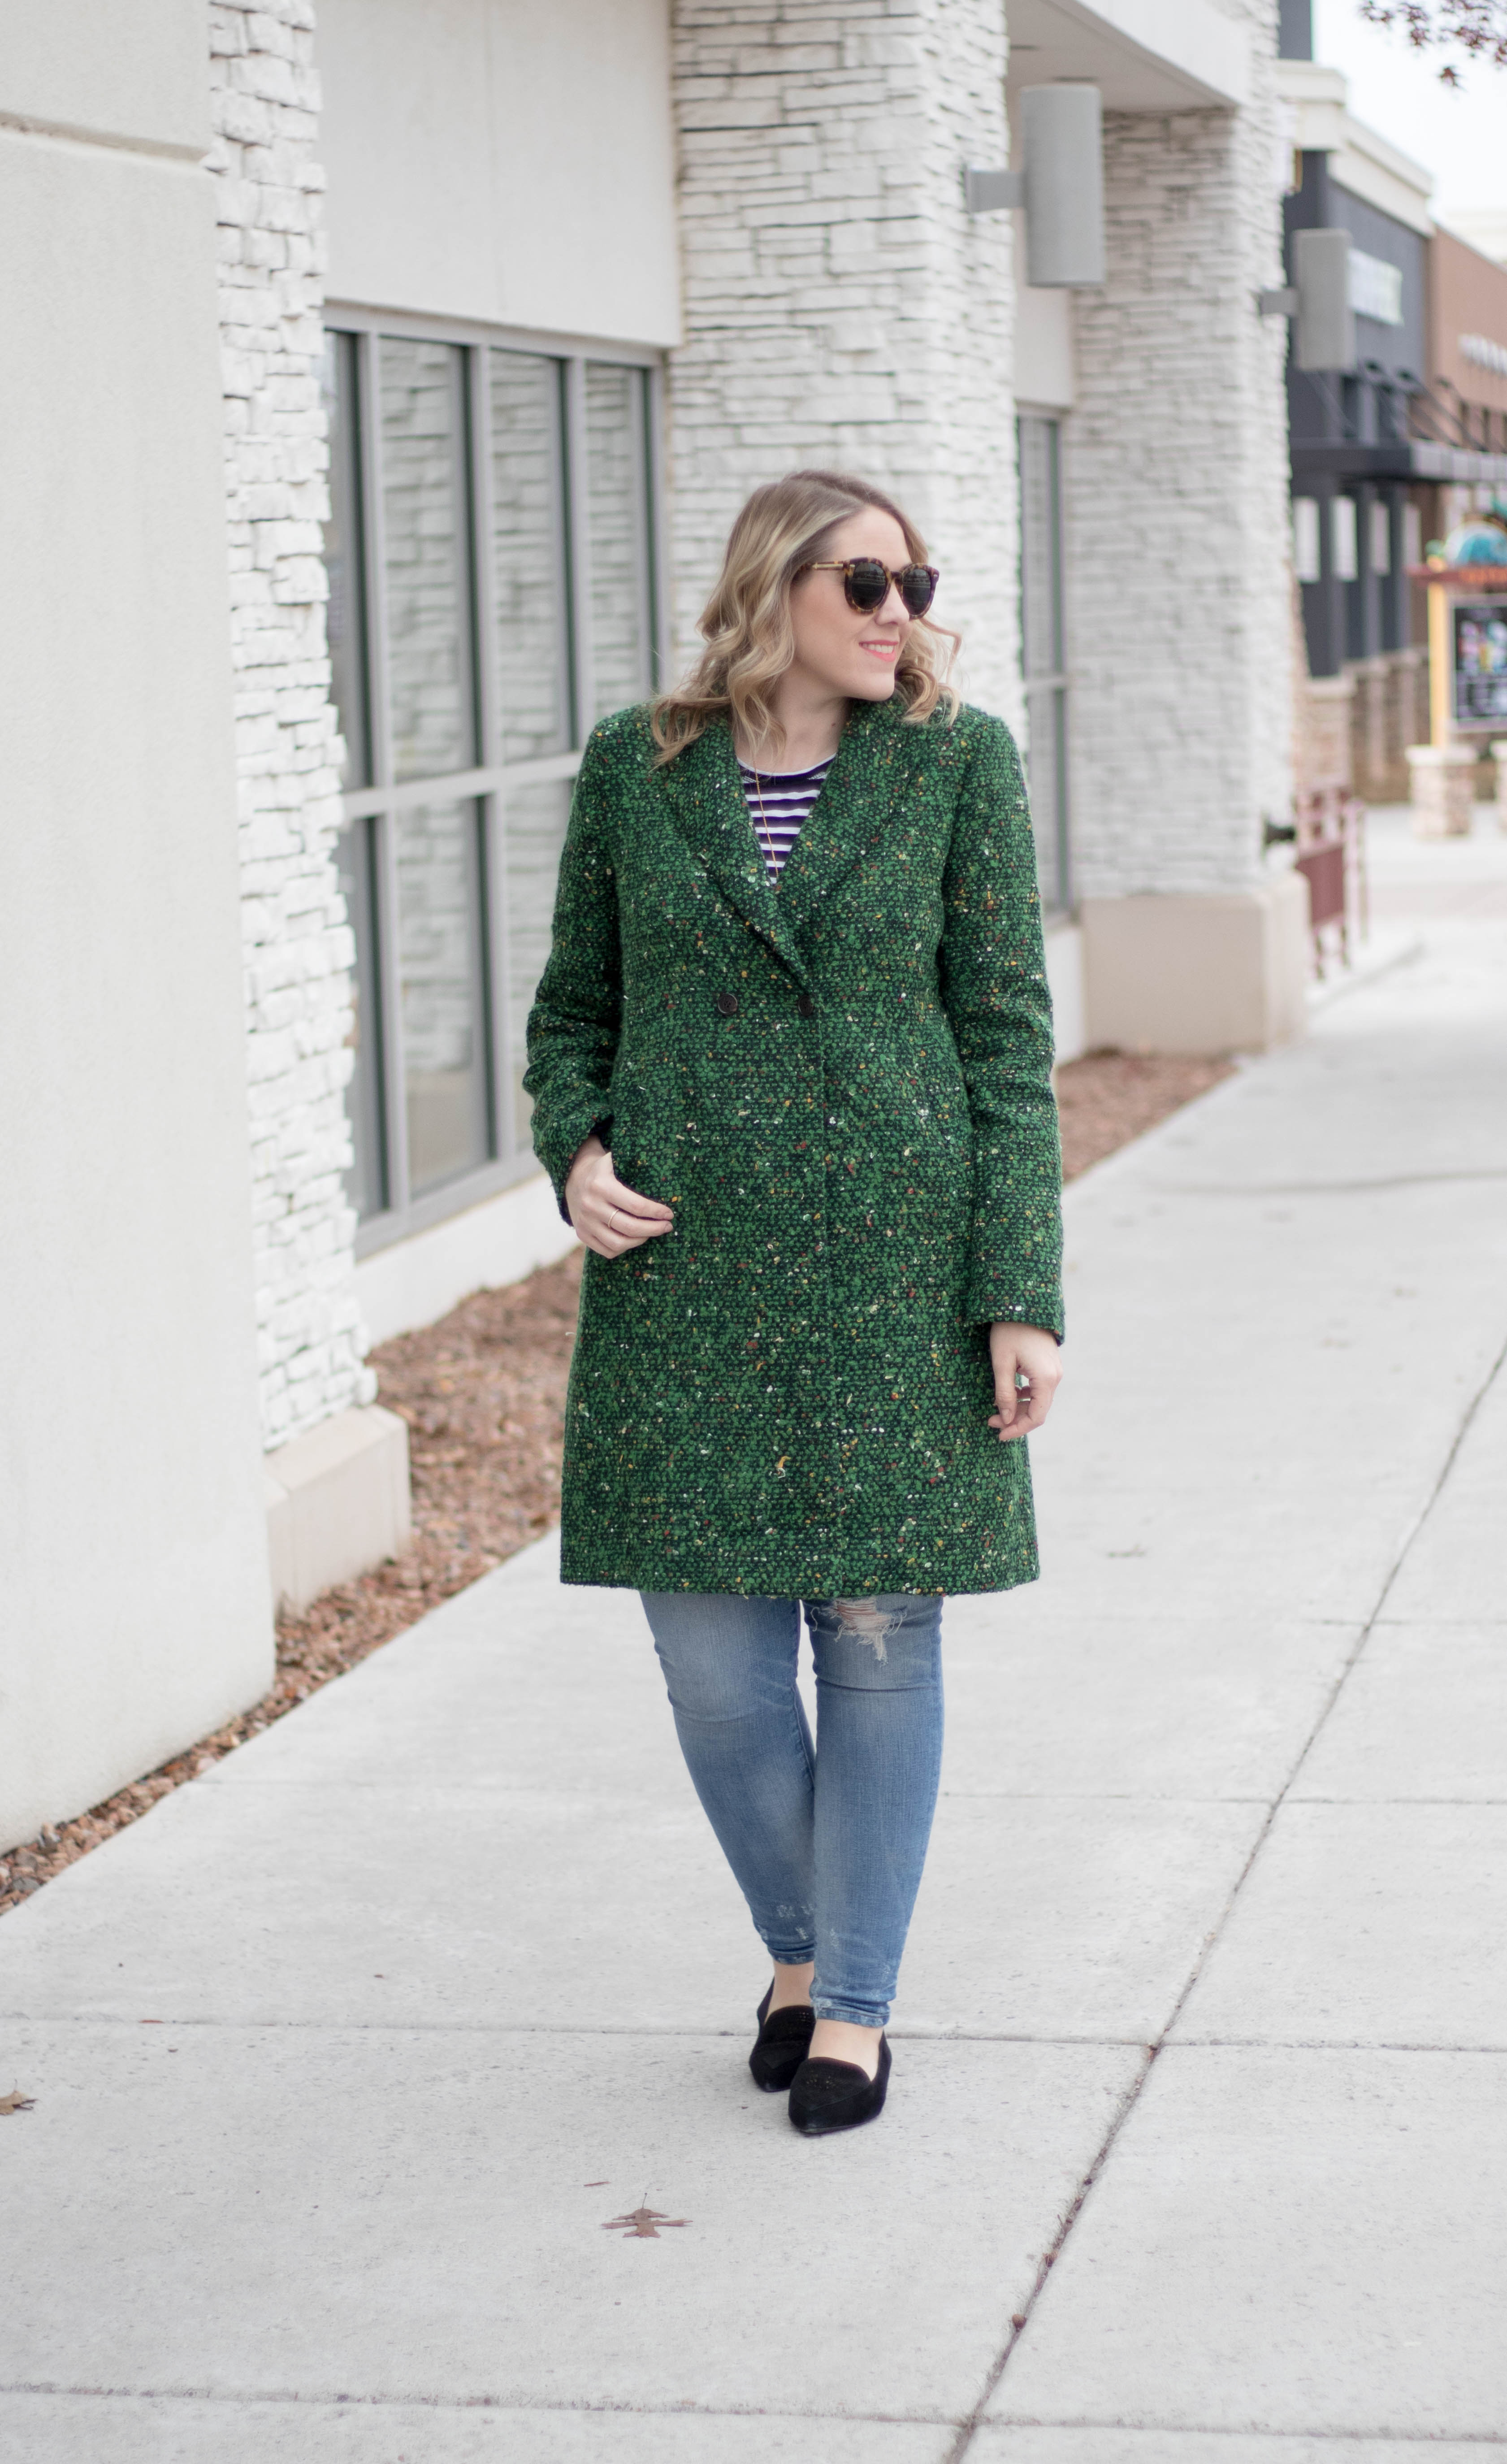 how to style a tweed coat for winter #winterfashion #winterstyle #jcrew